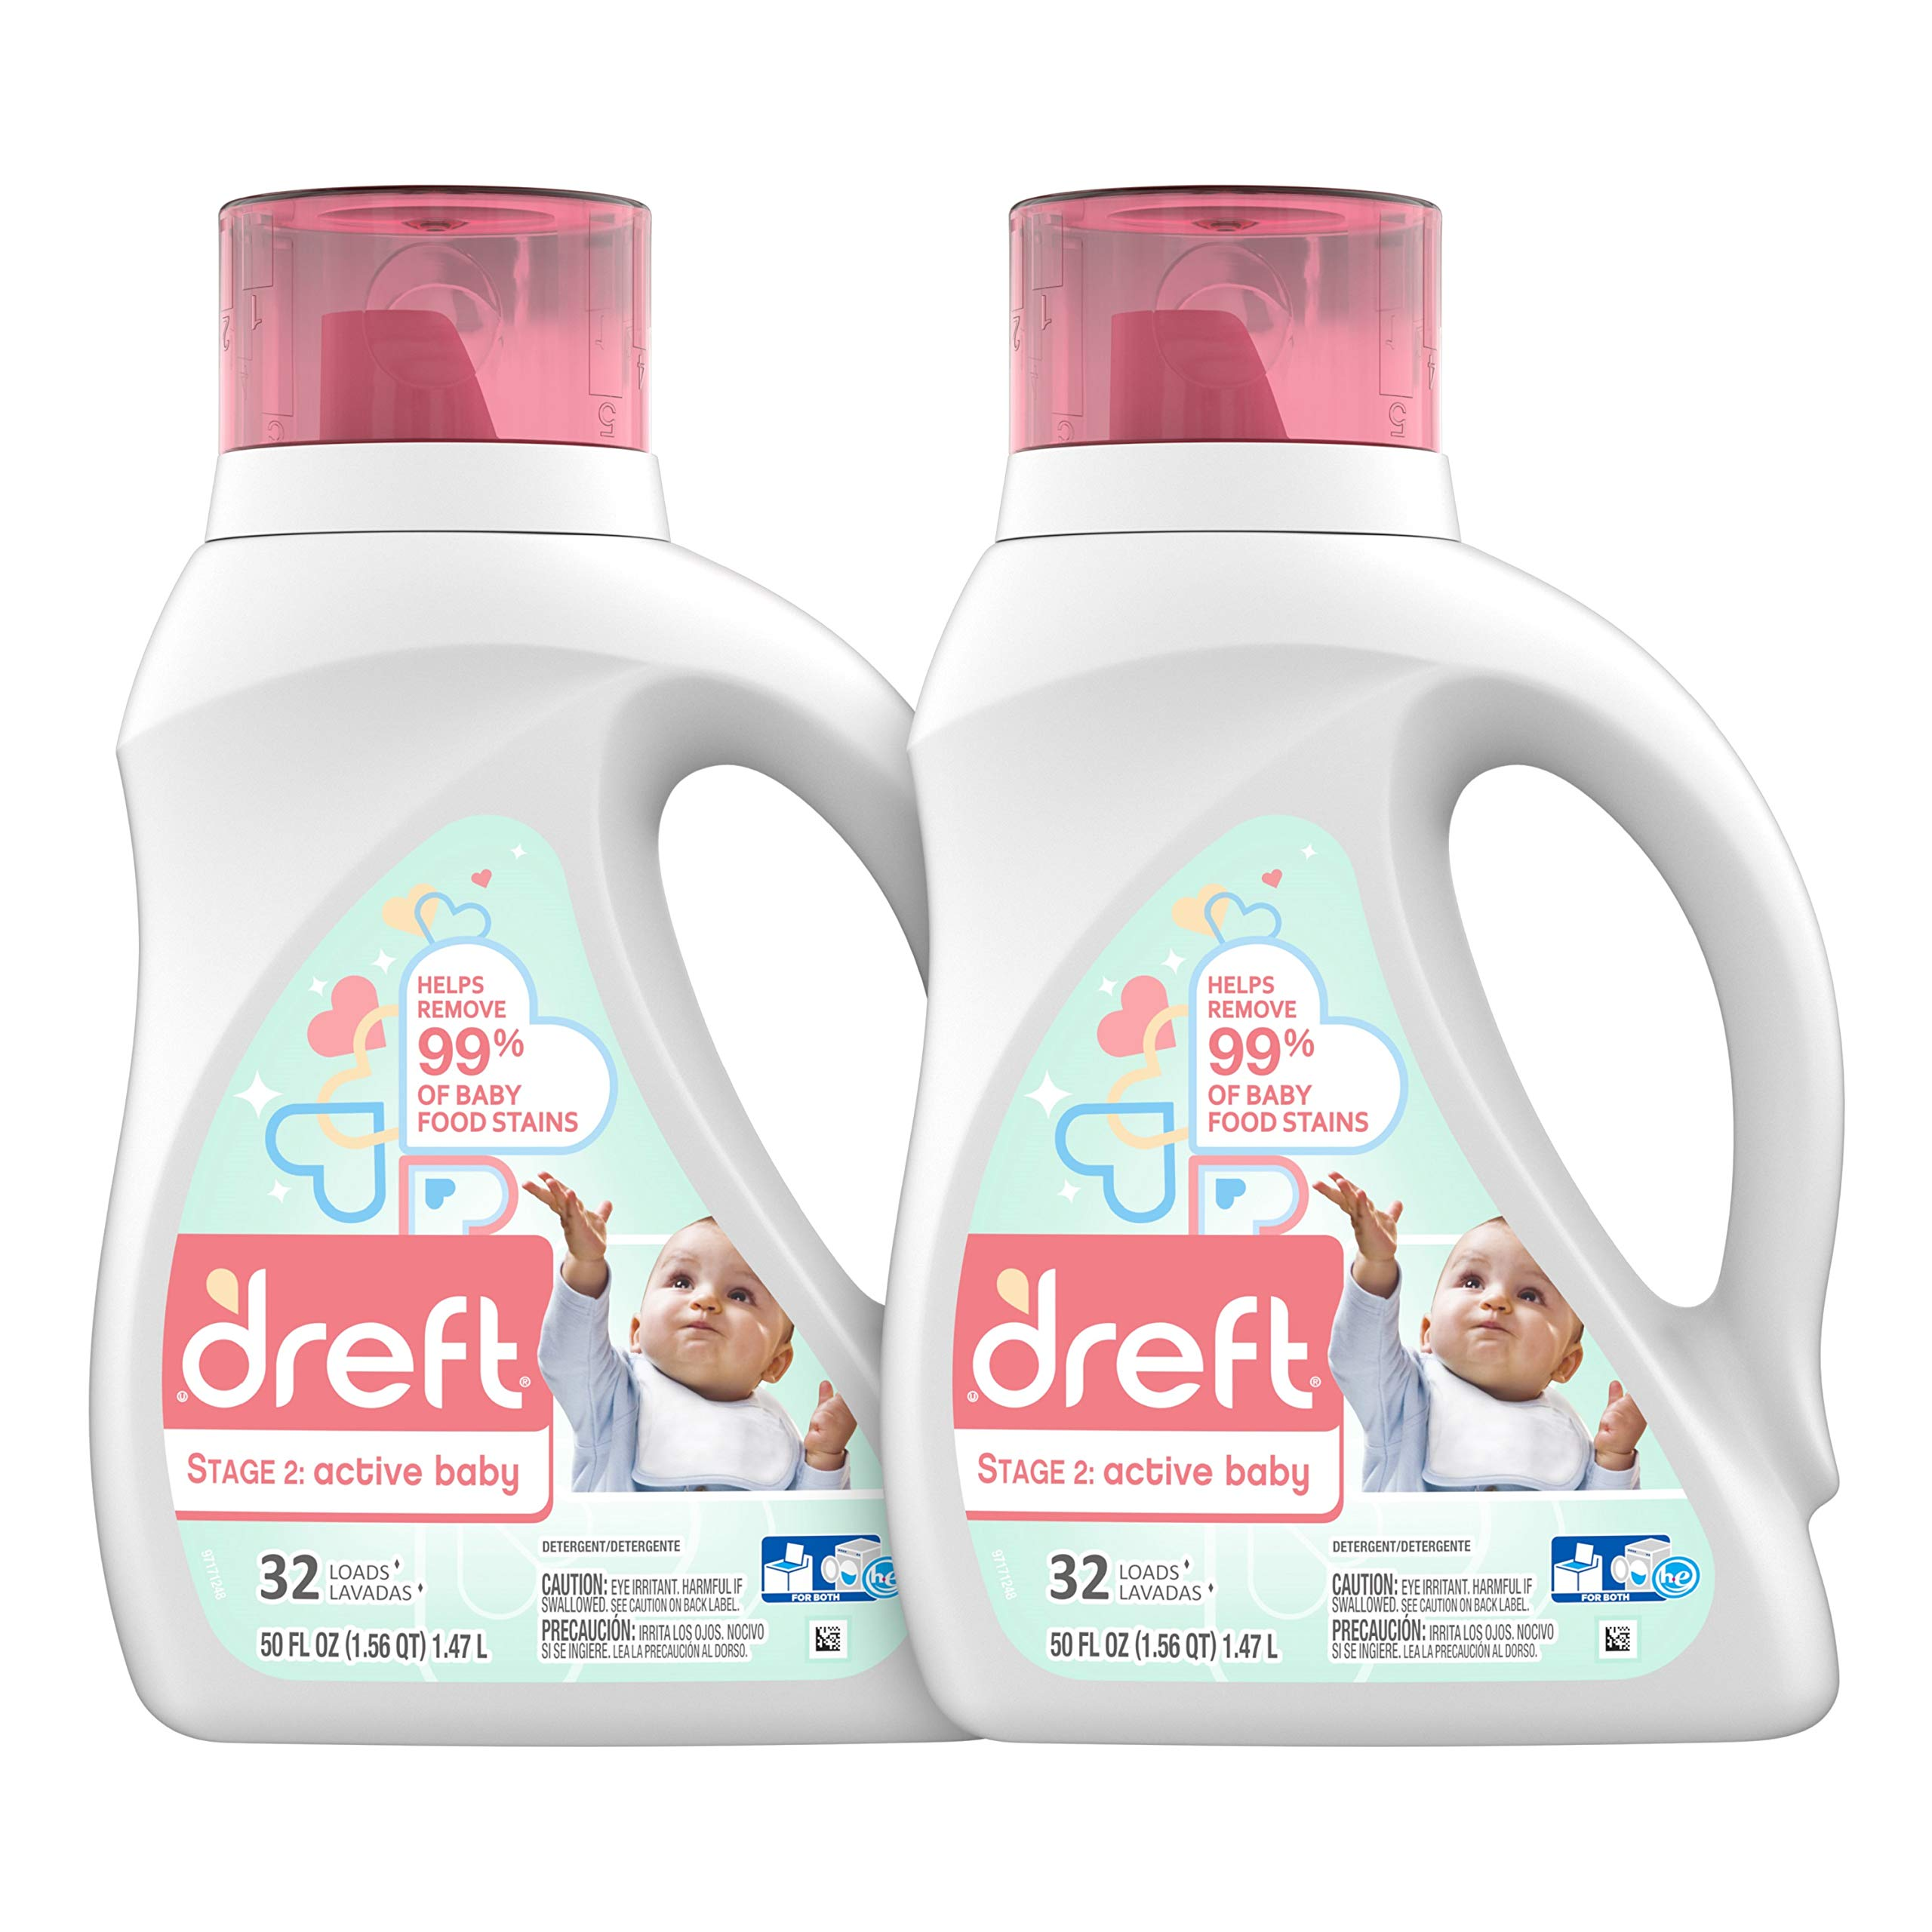 Dreft Stage 2: Active Hypoallergenic Liquid Baby Laundry Detergent for Baby, Newborn, or Infant, 50 Ounces(32 Loads), 2 Count (Packaging May Vary) by Dreft